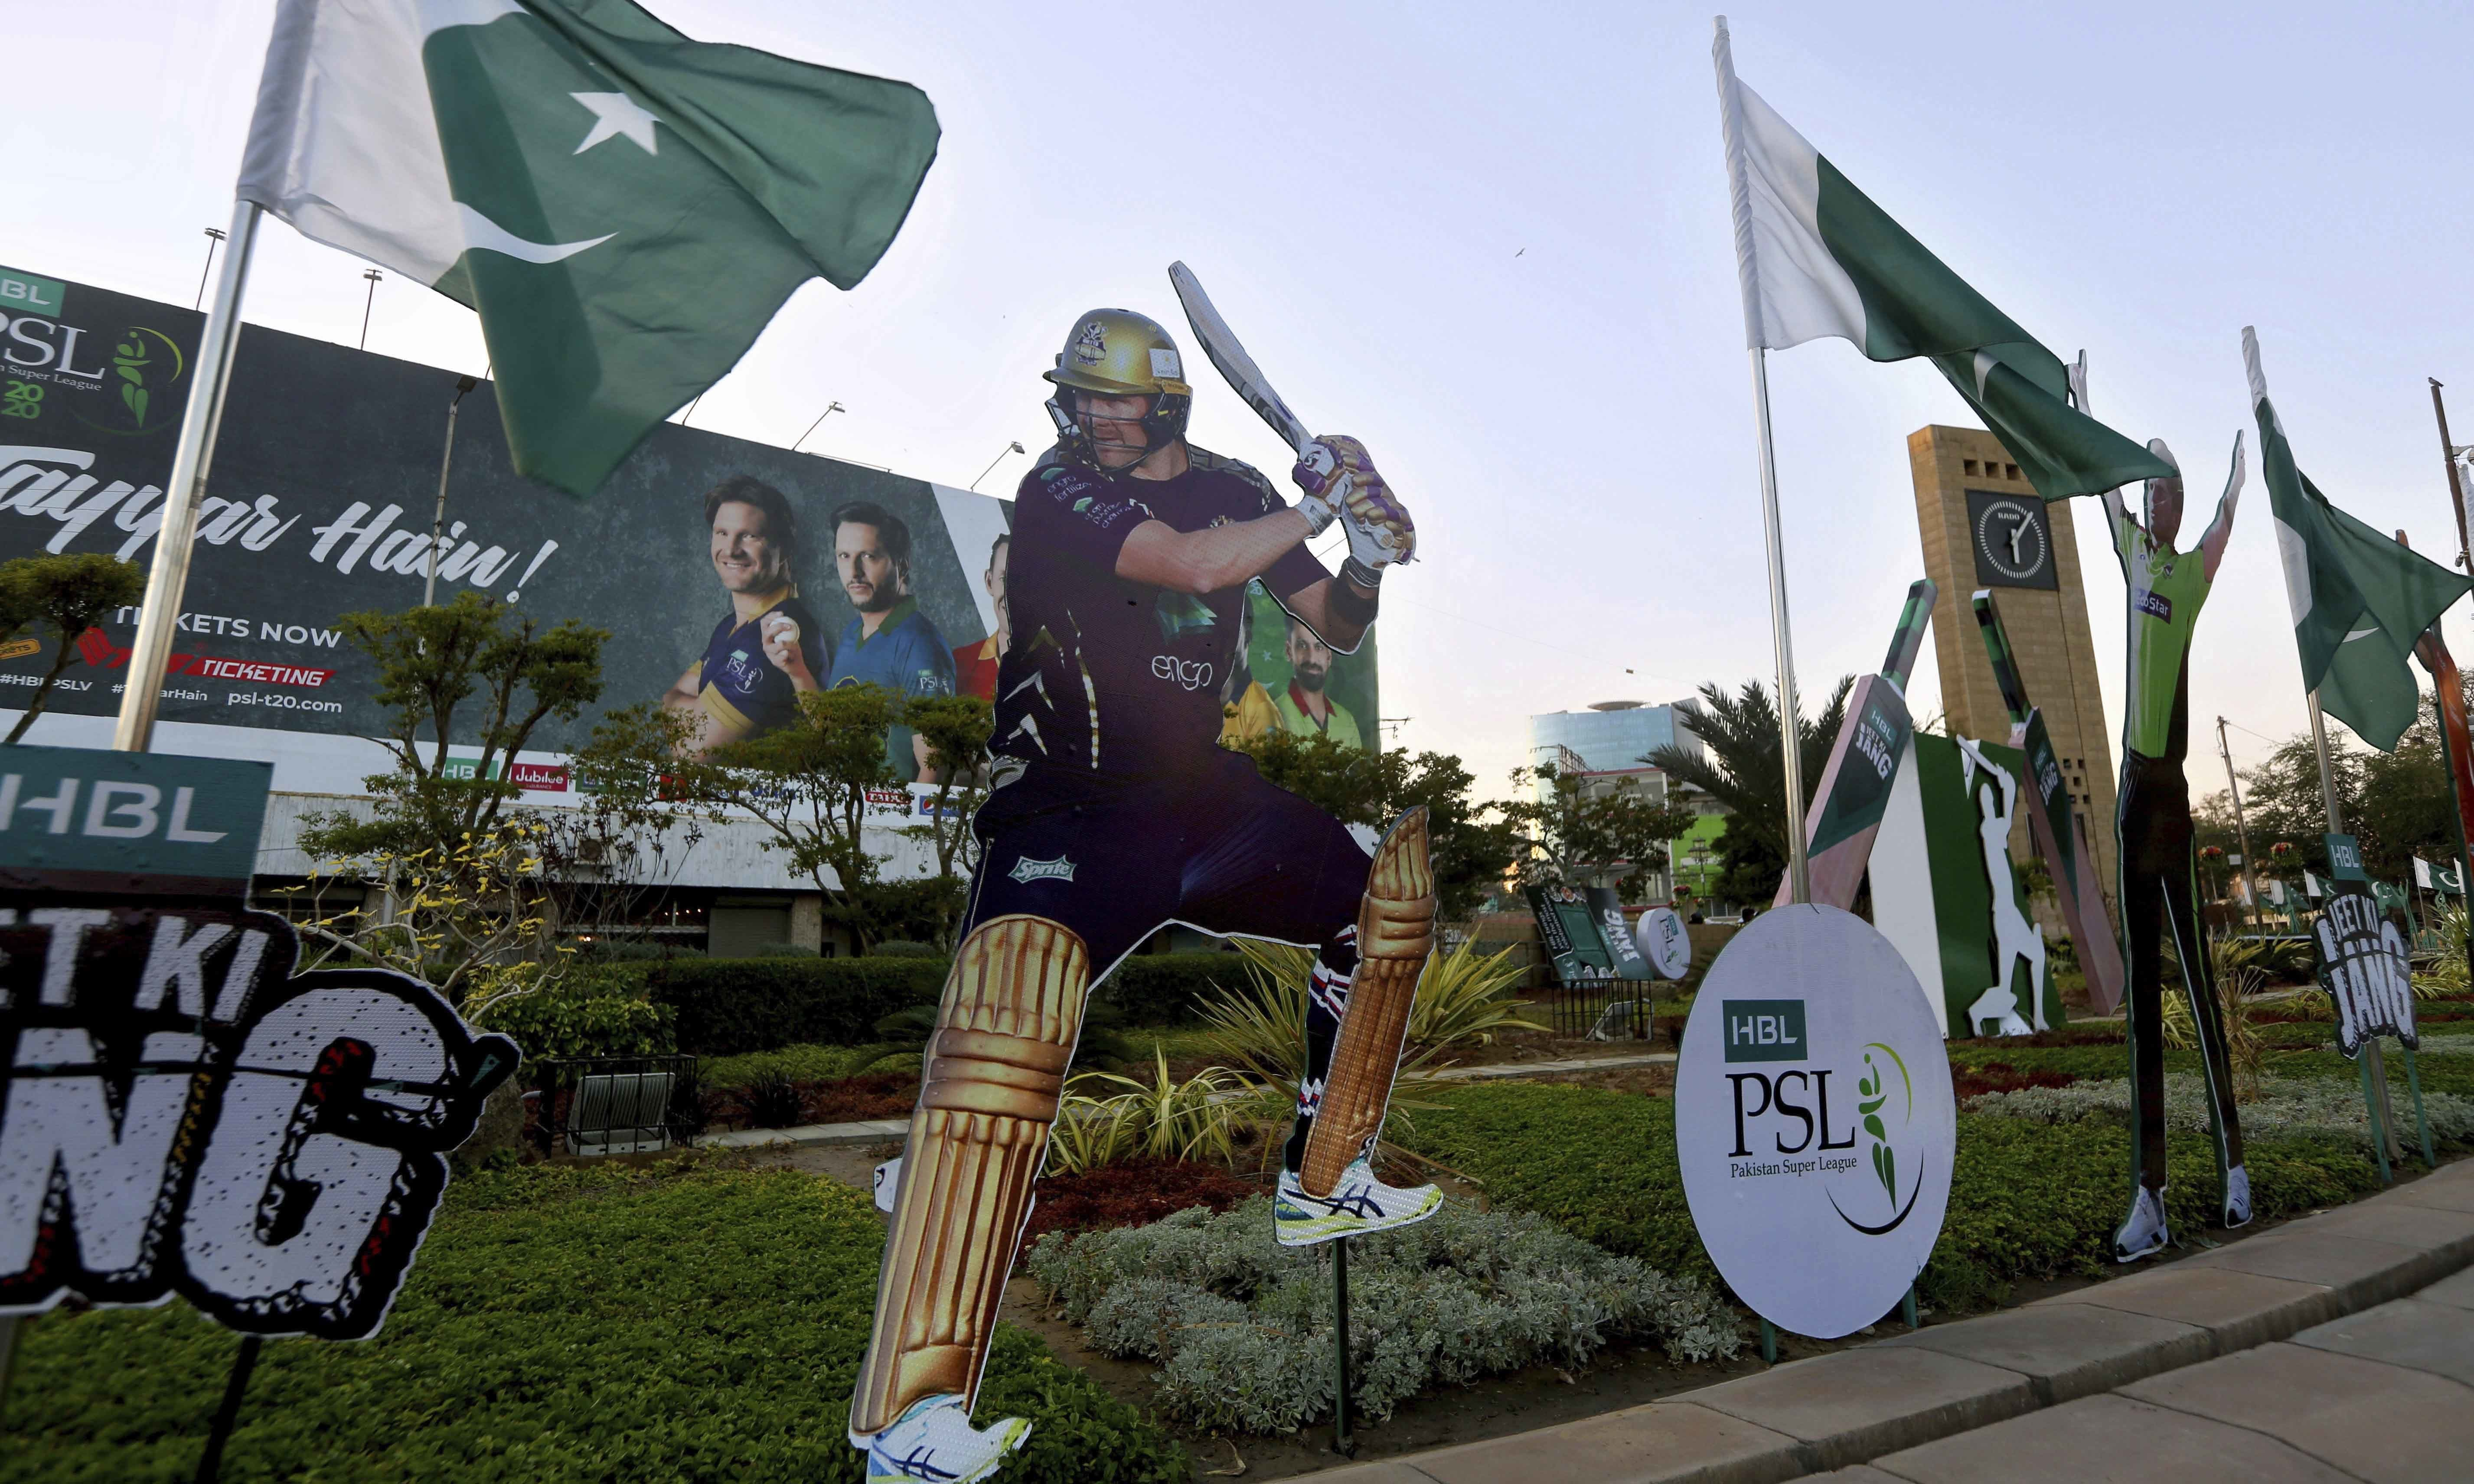 The return of international cricket has been a slow process in Pakistan following an attack on the Sri Lanka team's bus in Lahore during a test series in 2009. — AP